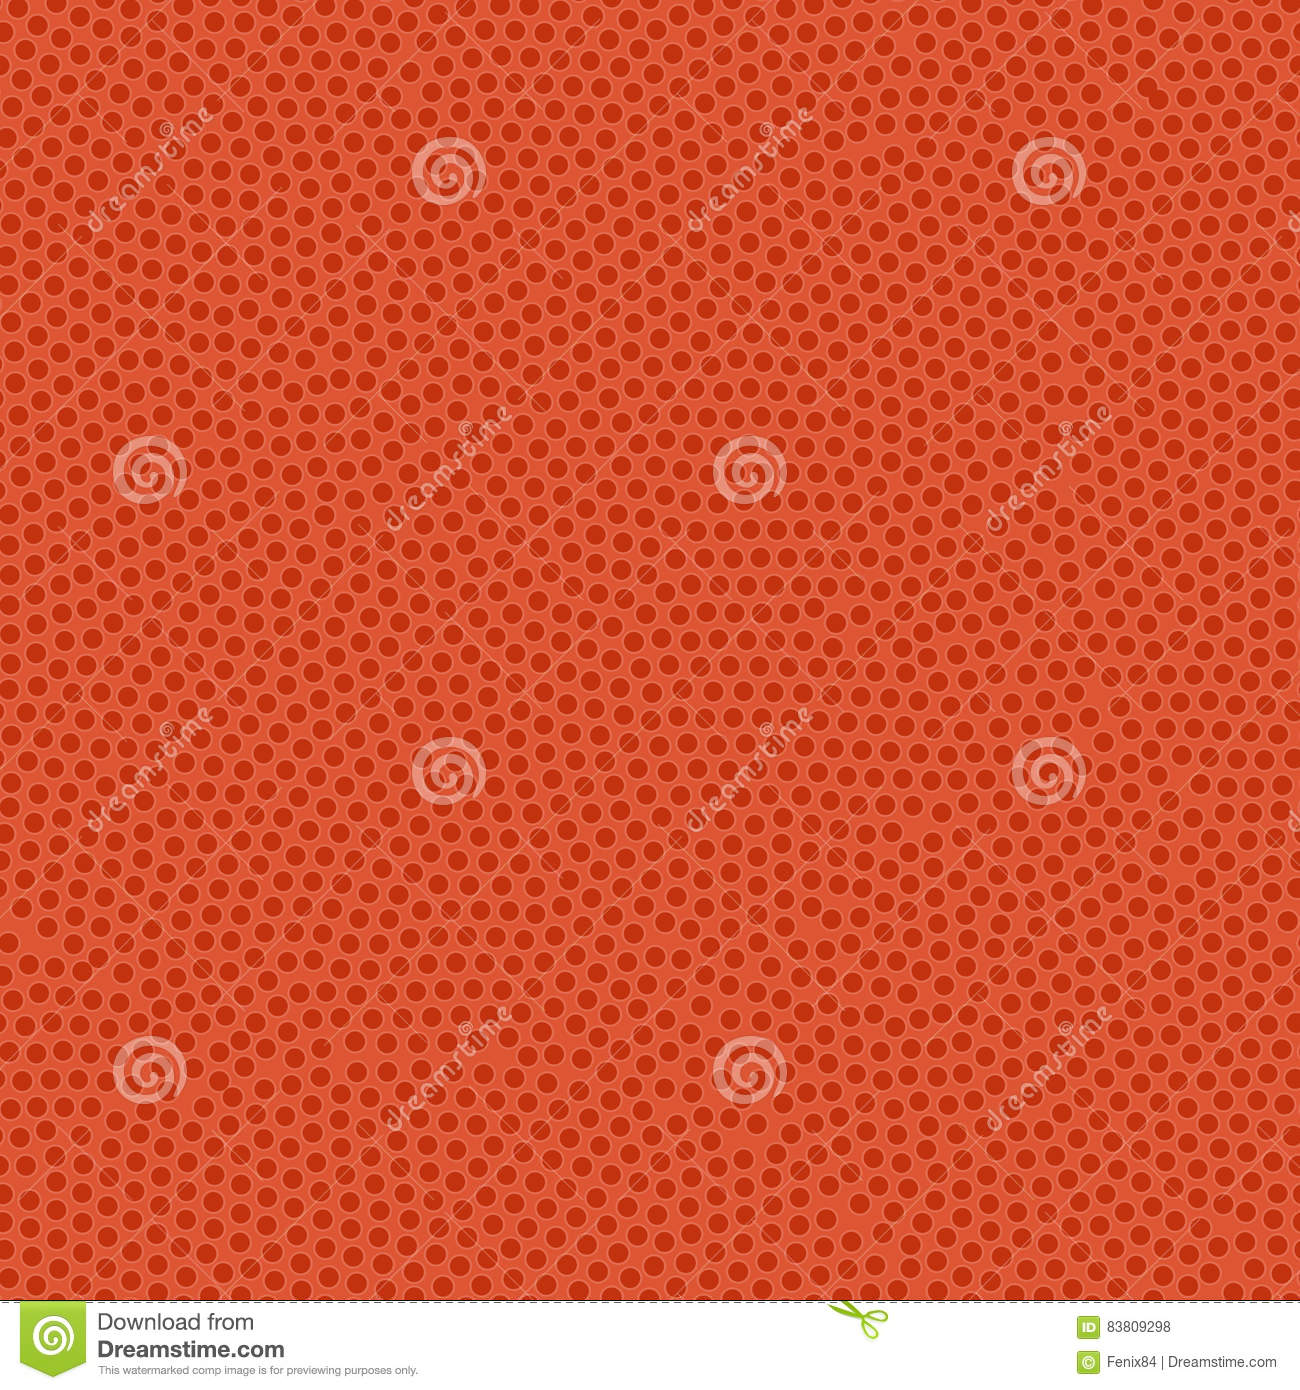 Basketball ball texture. Orange rubber coating with pimples. Sea